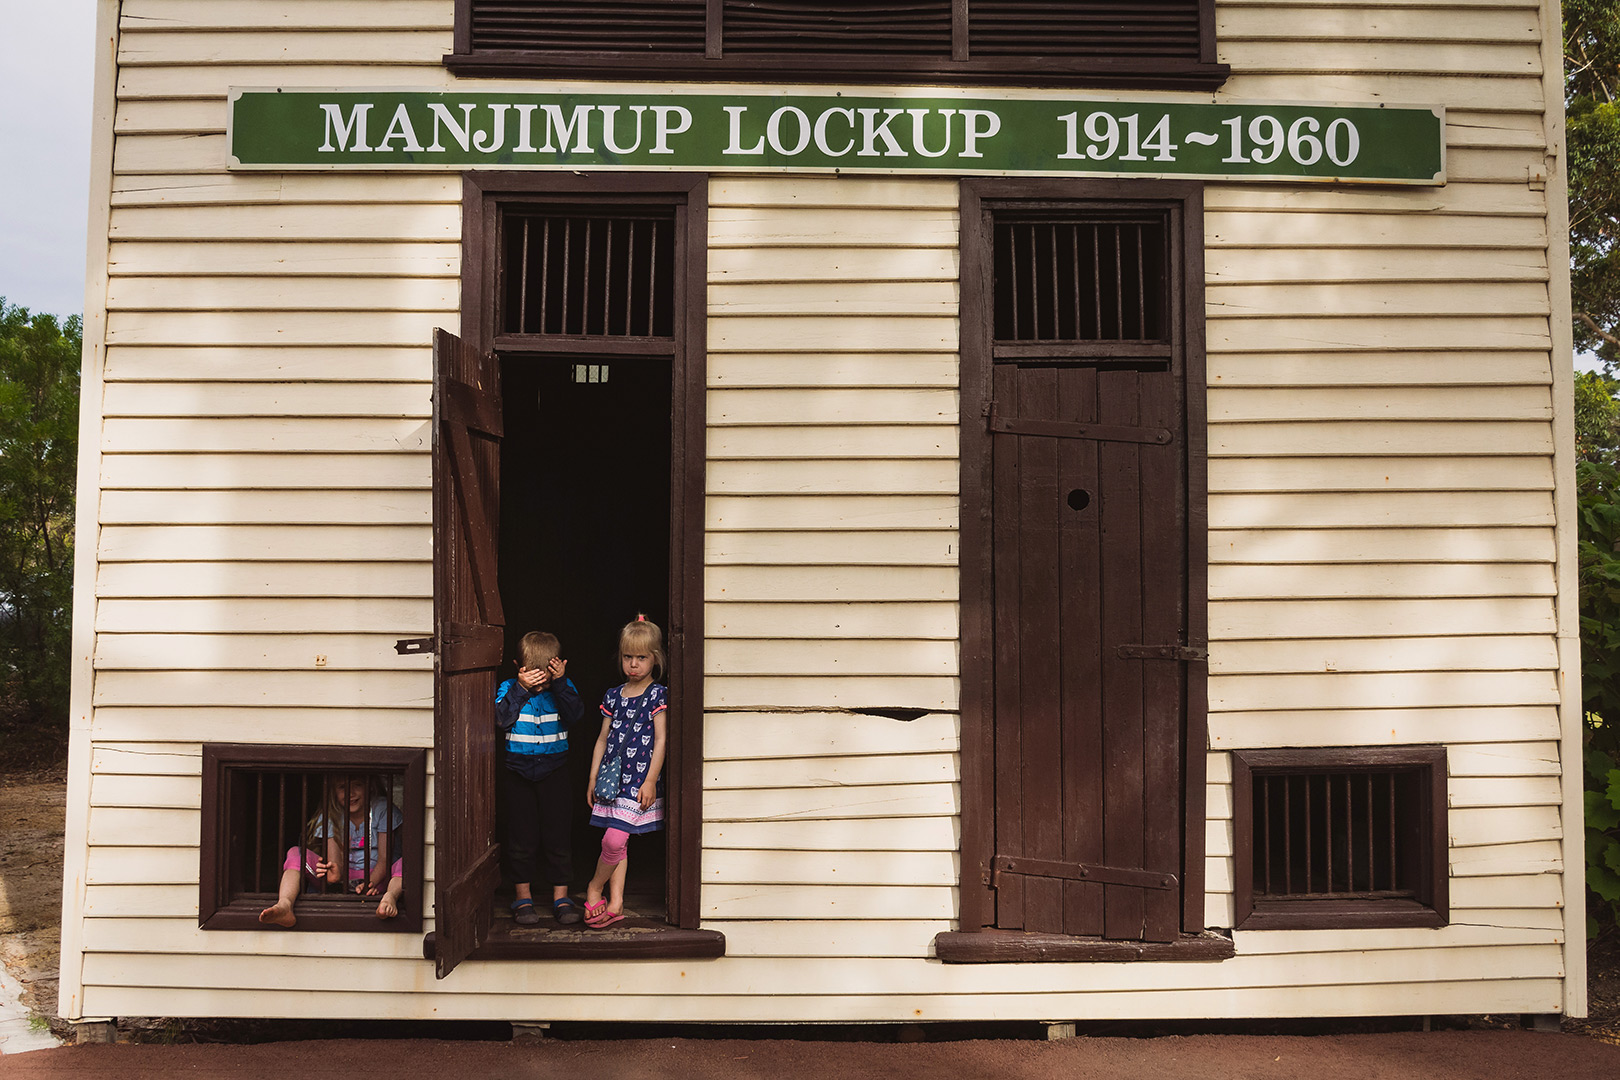 children looking sad in the manjimup lock up building